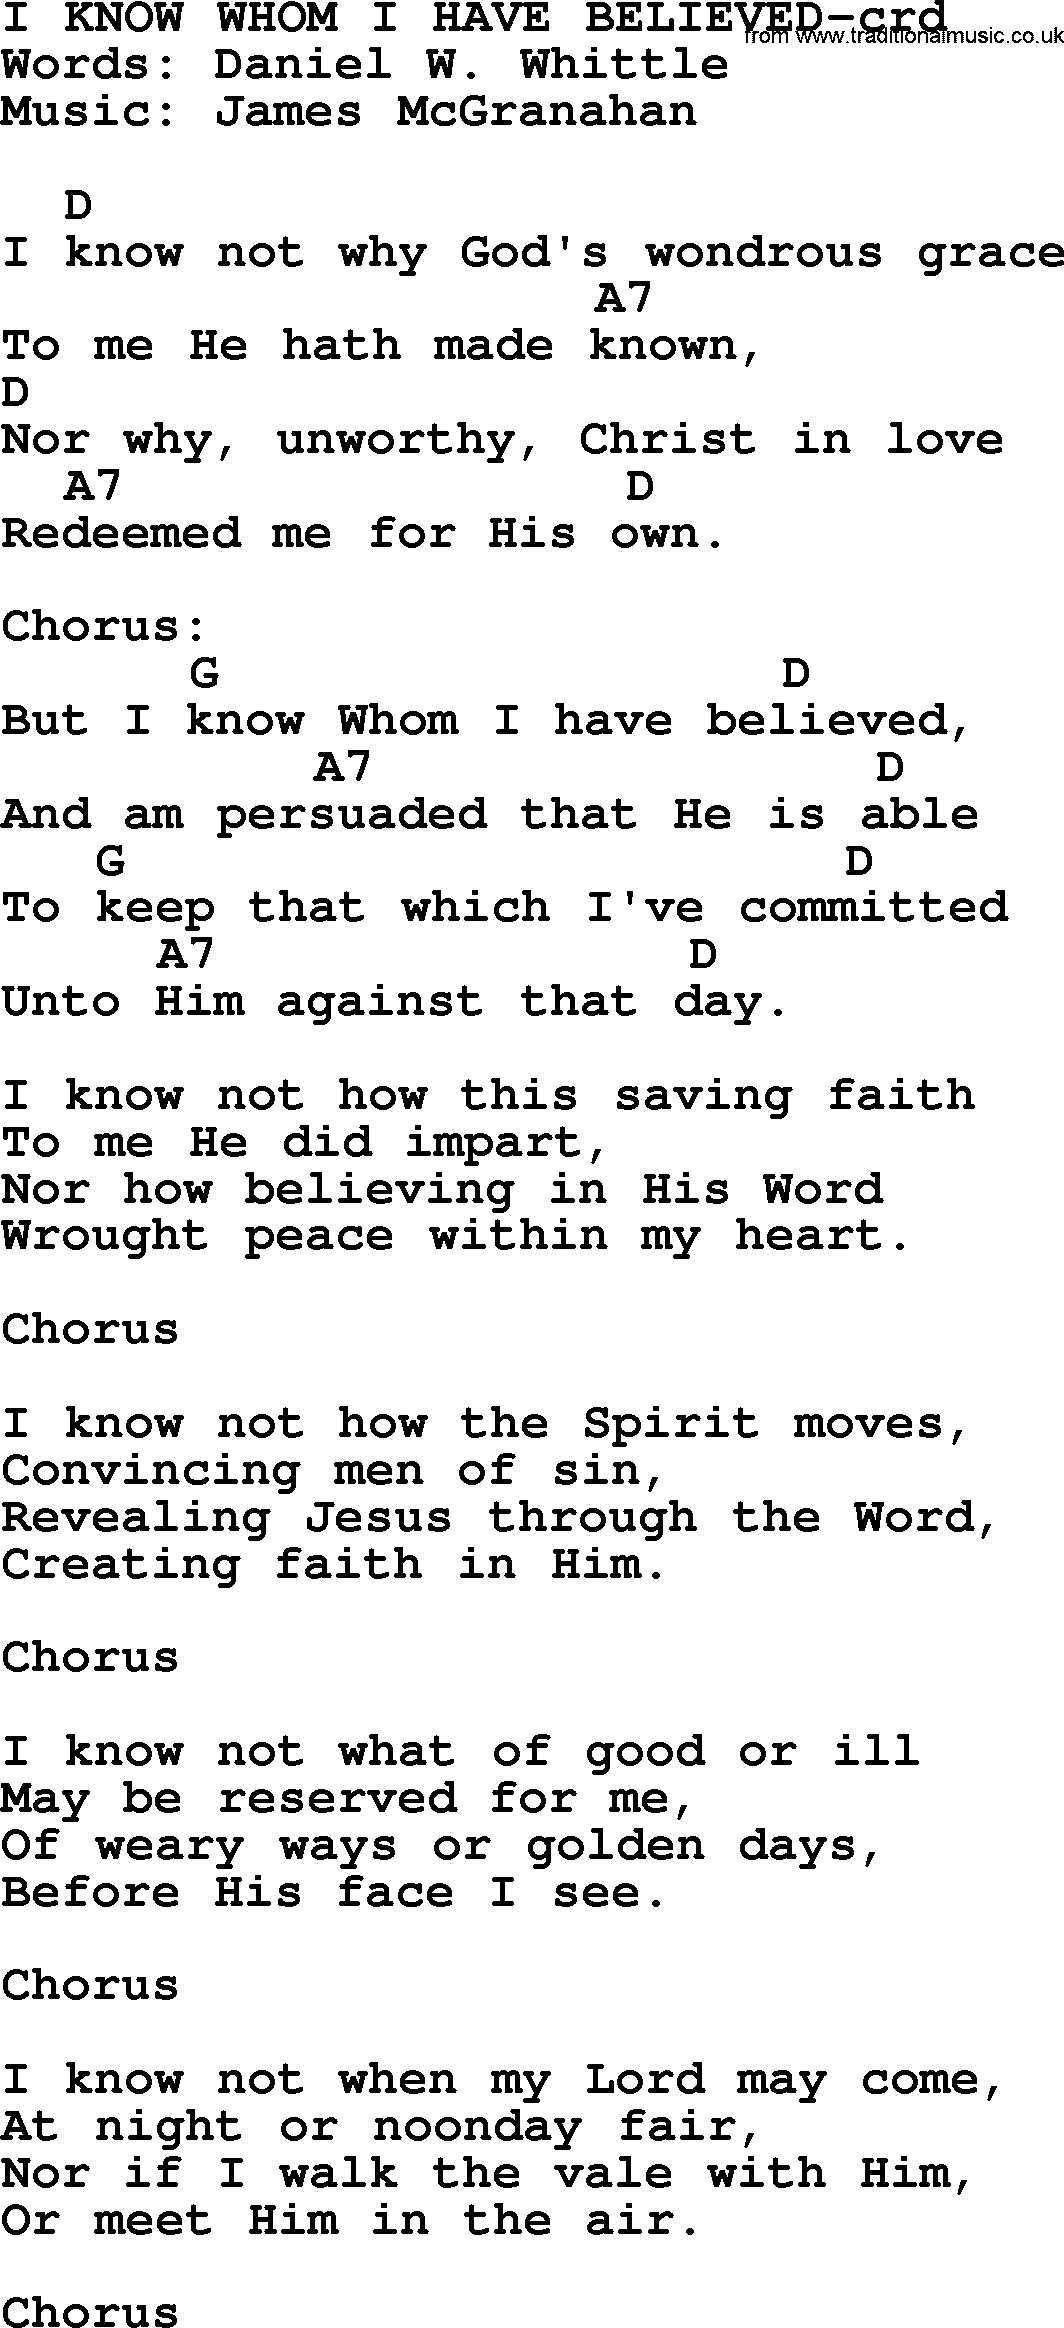 Top 500 Hymn: I Know Whom I Have Believed - lyrics, chords and PDF